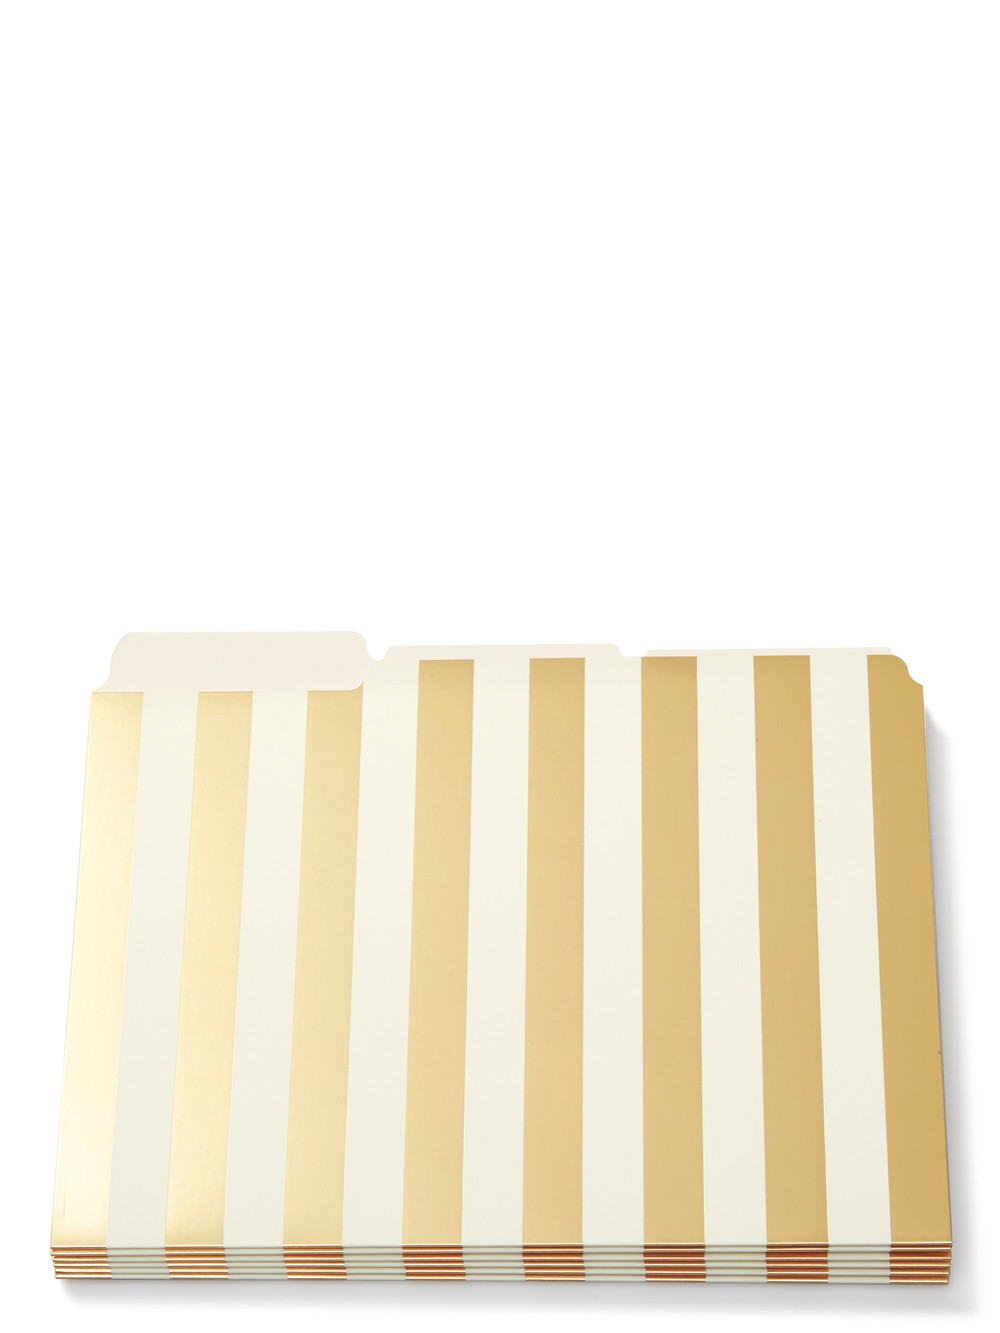 Gold Stripe File Folders.jpg